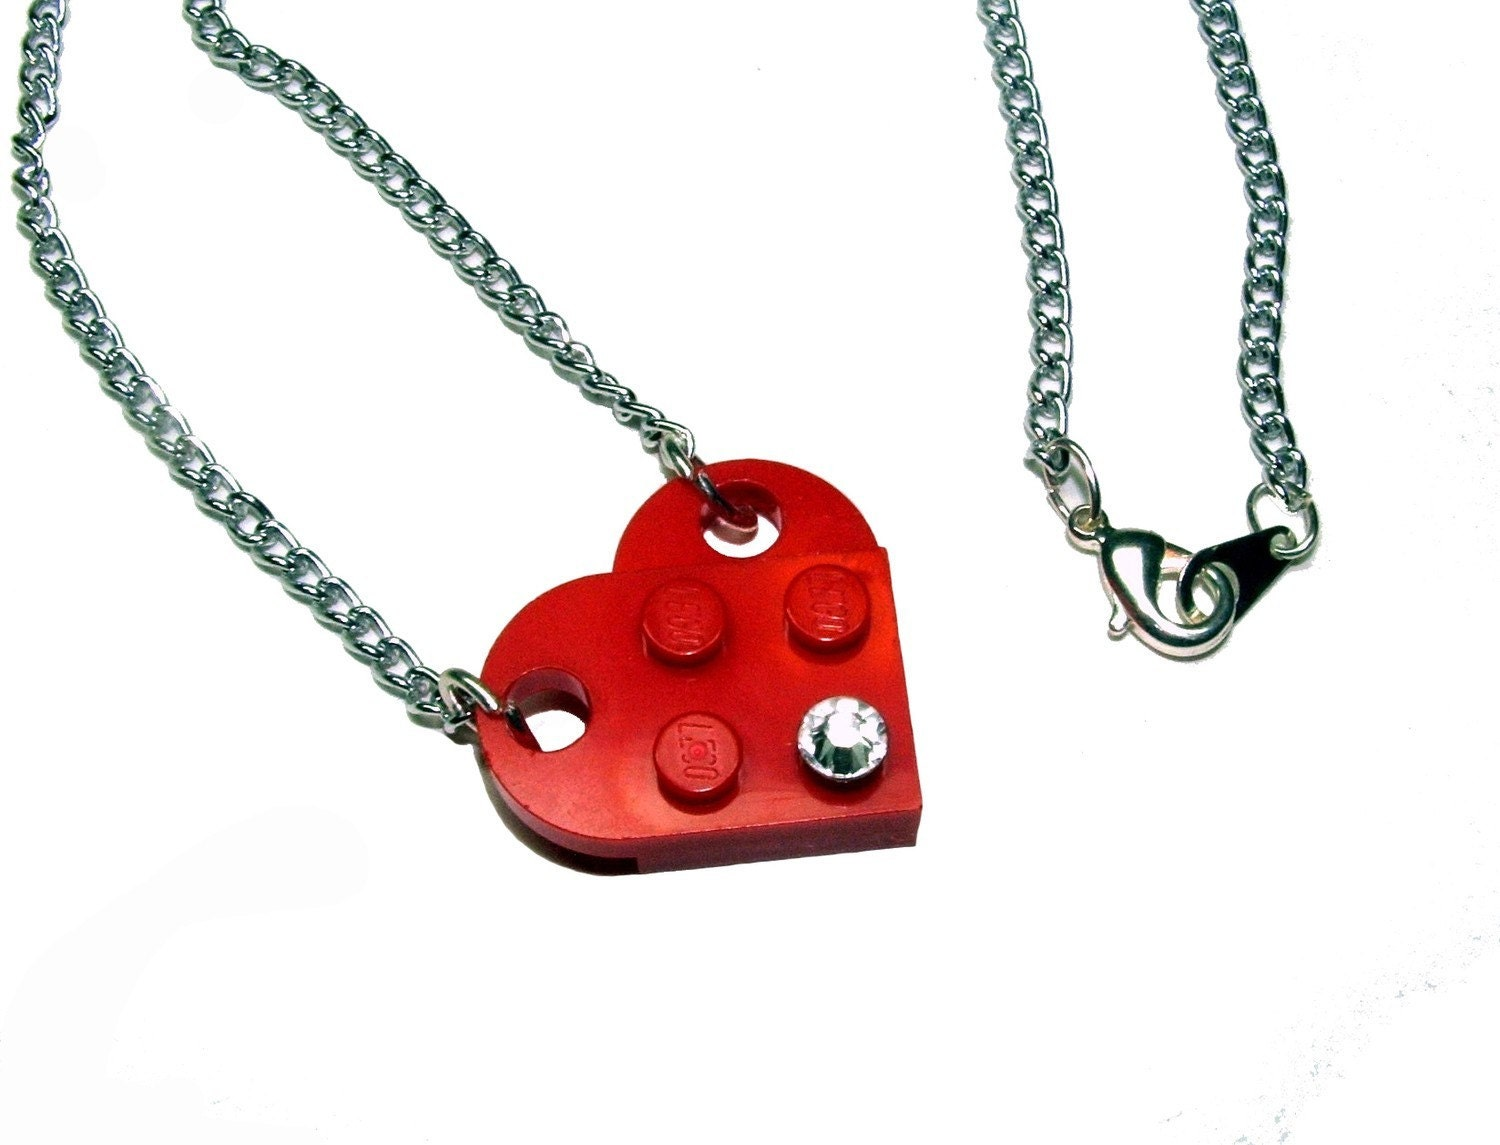 Lego Heart with Crystal on Silver-Tone Curb Chain, Swarovski Crystal Elements